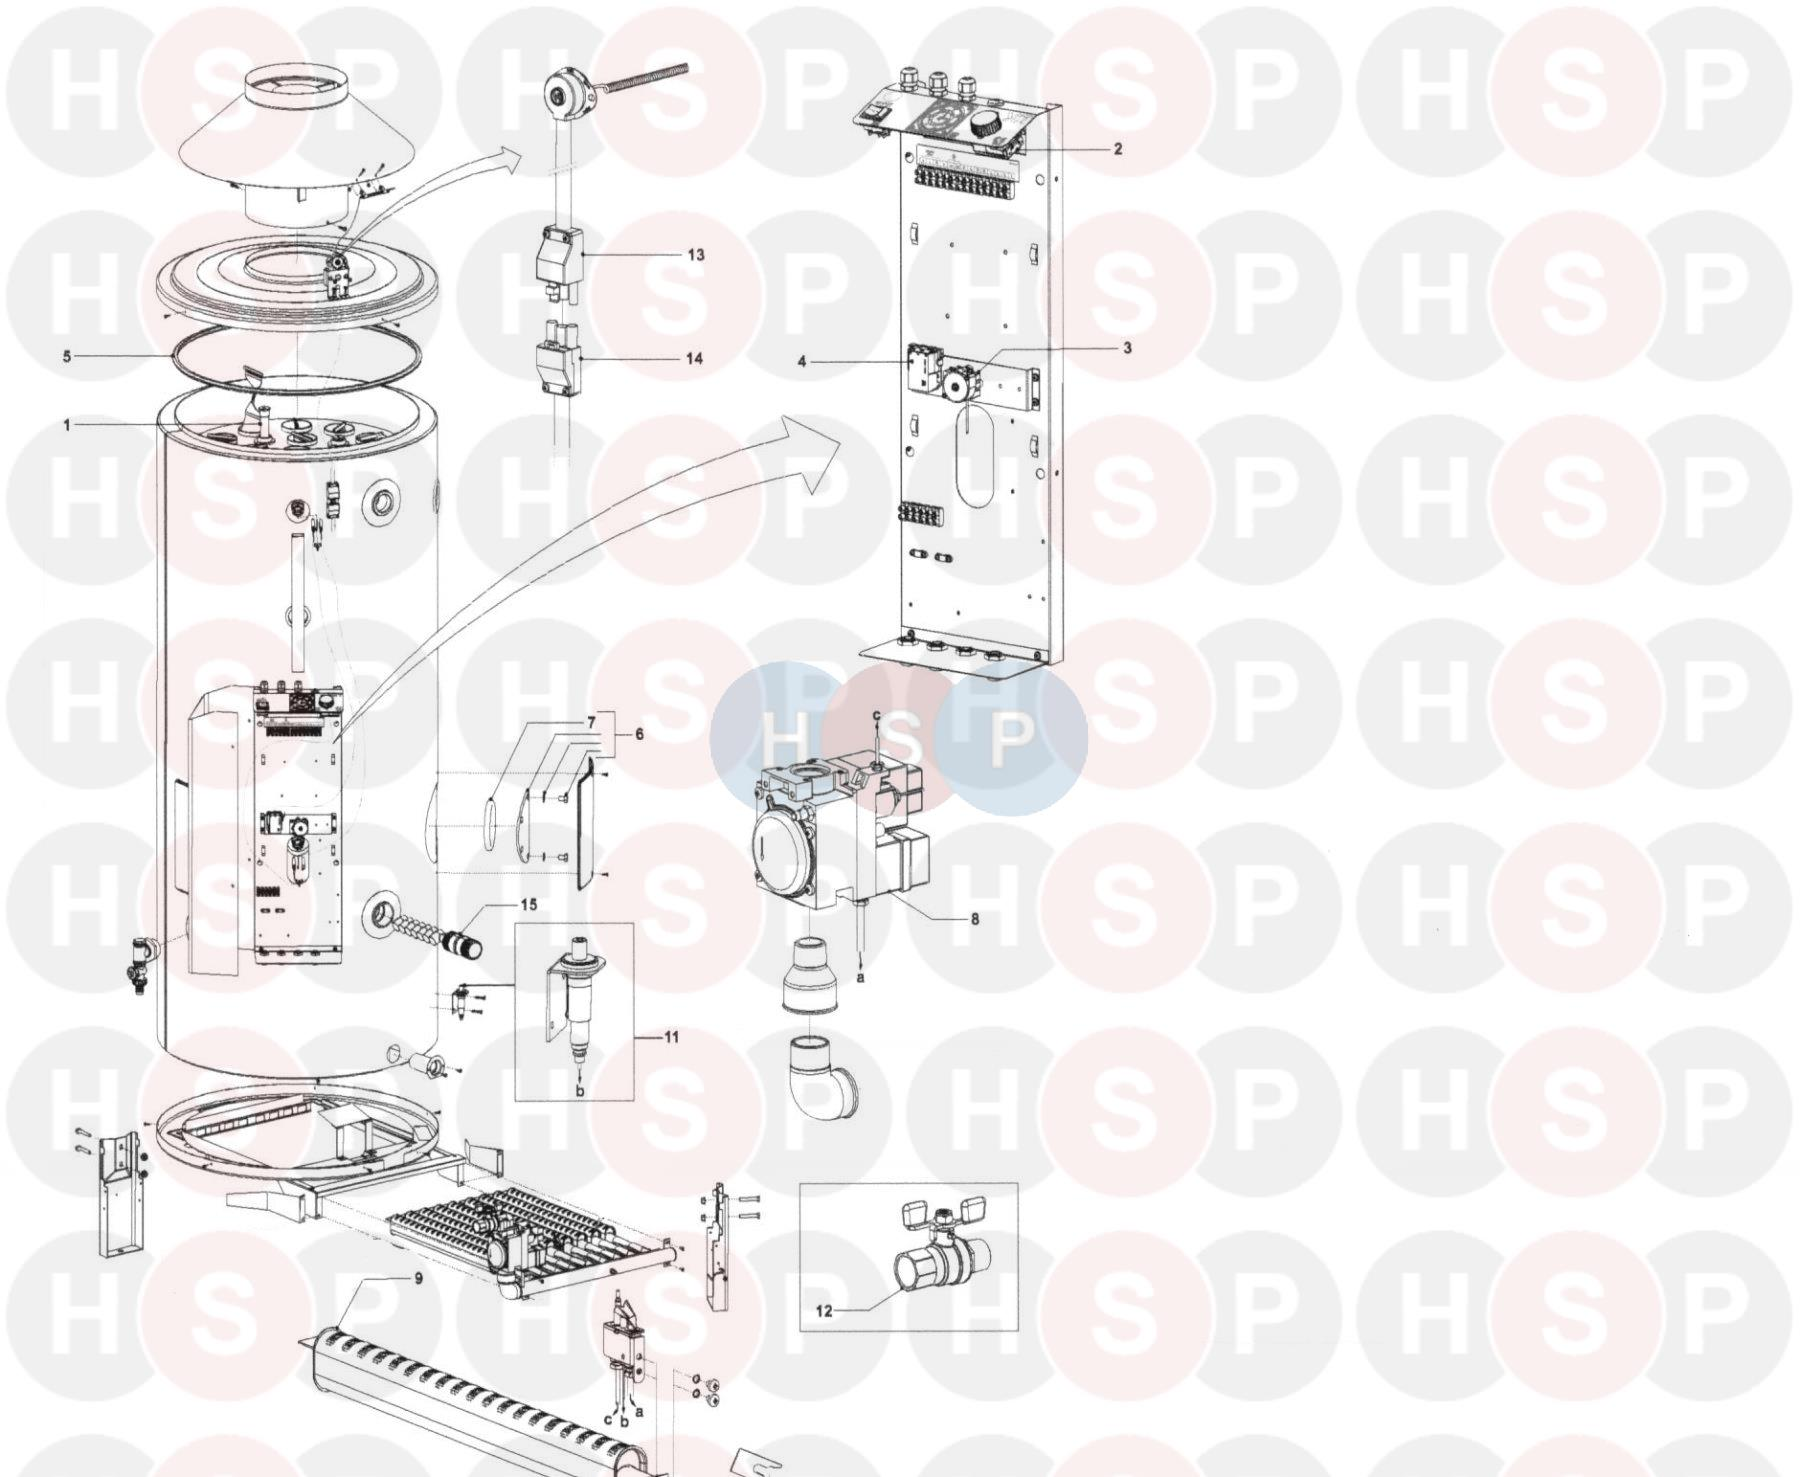 Johnson Starley STATE SCT80-140 Appliance Diagram (GAS